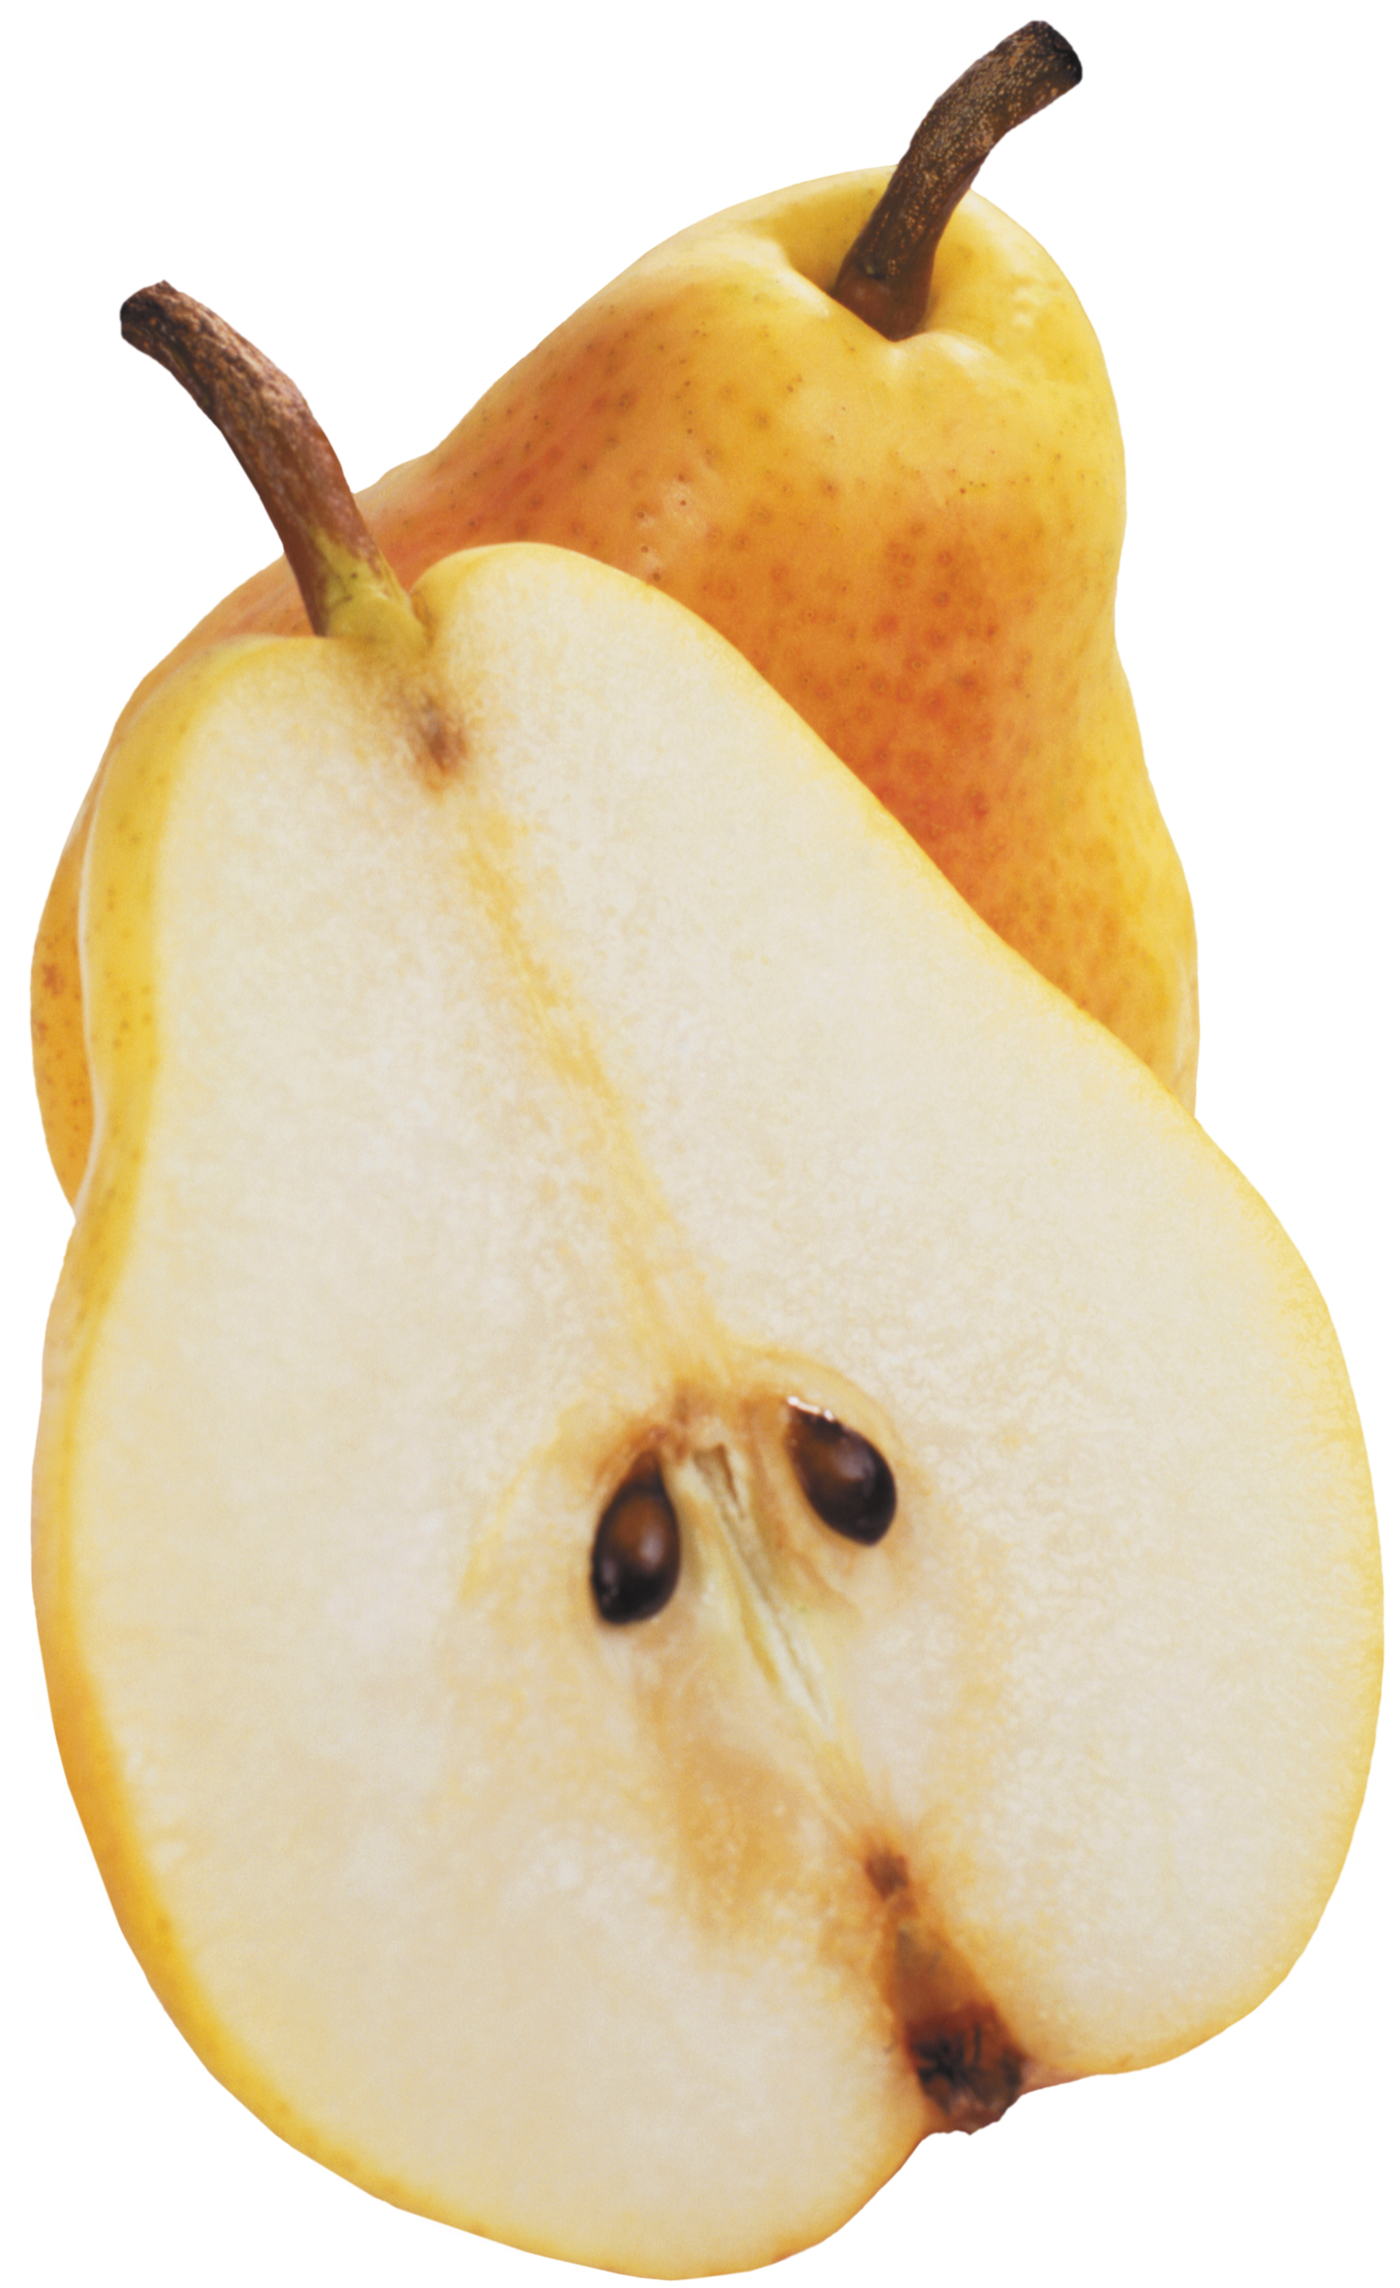 Pear clipart pear shape. Png picture fruit and